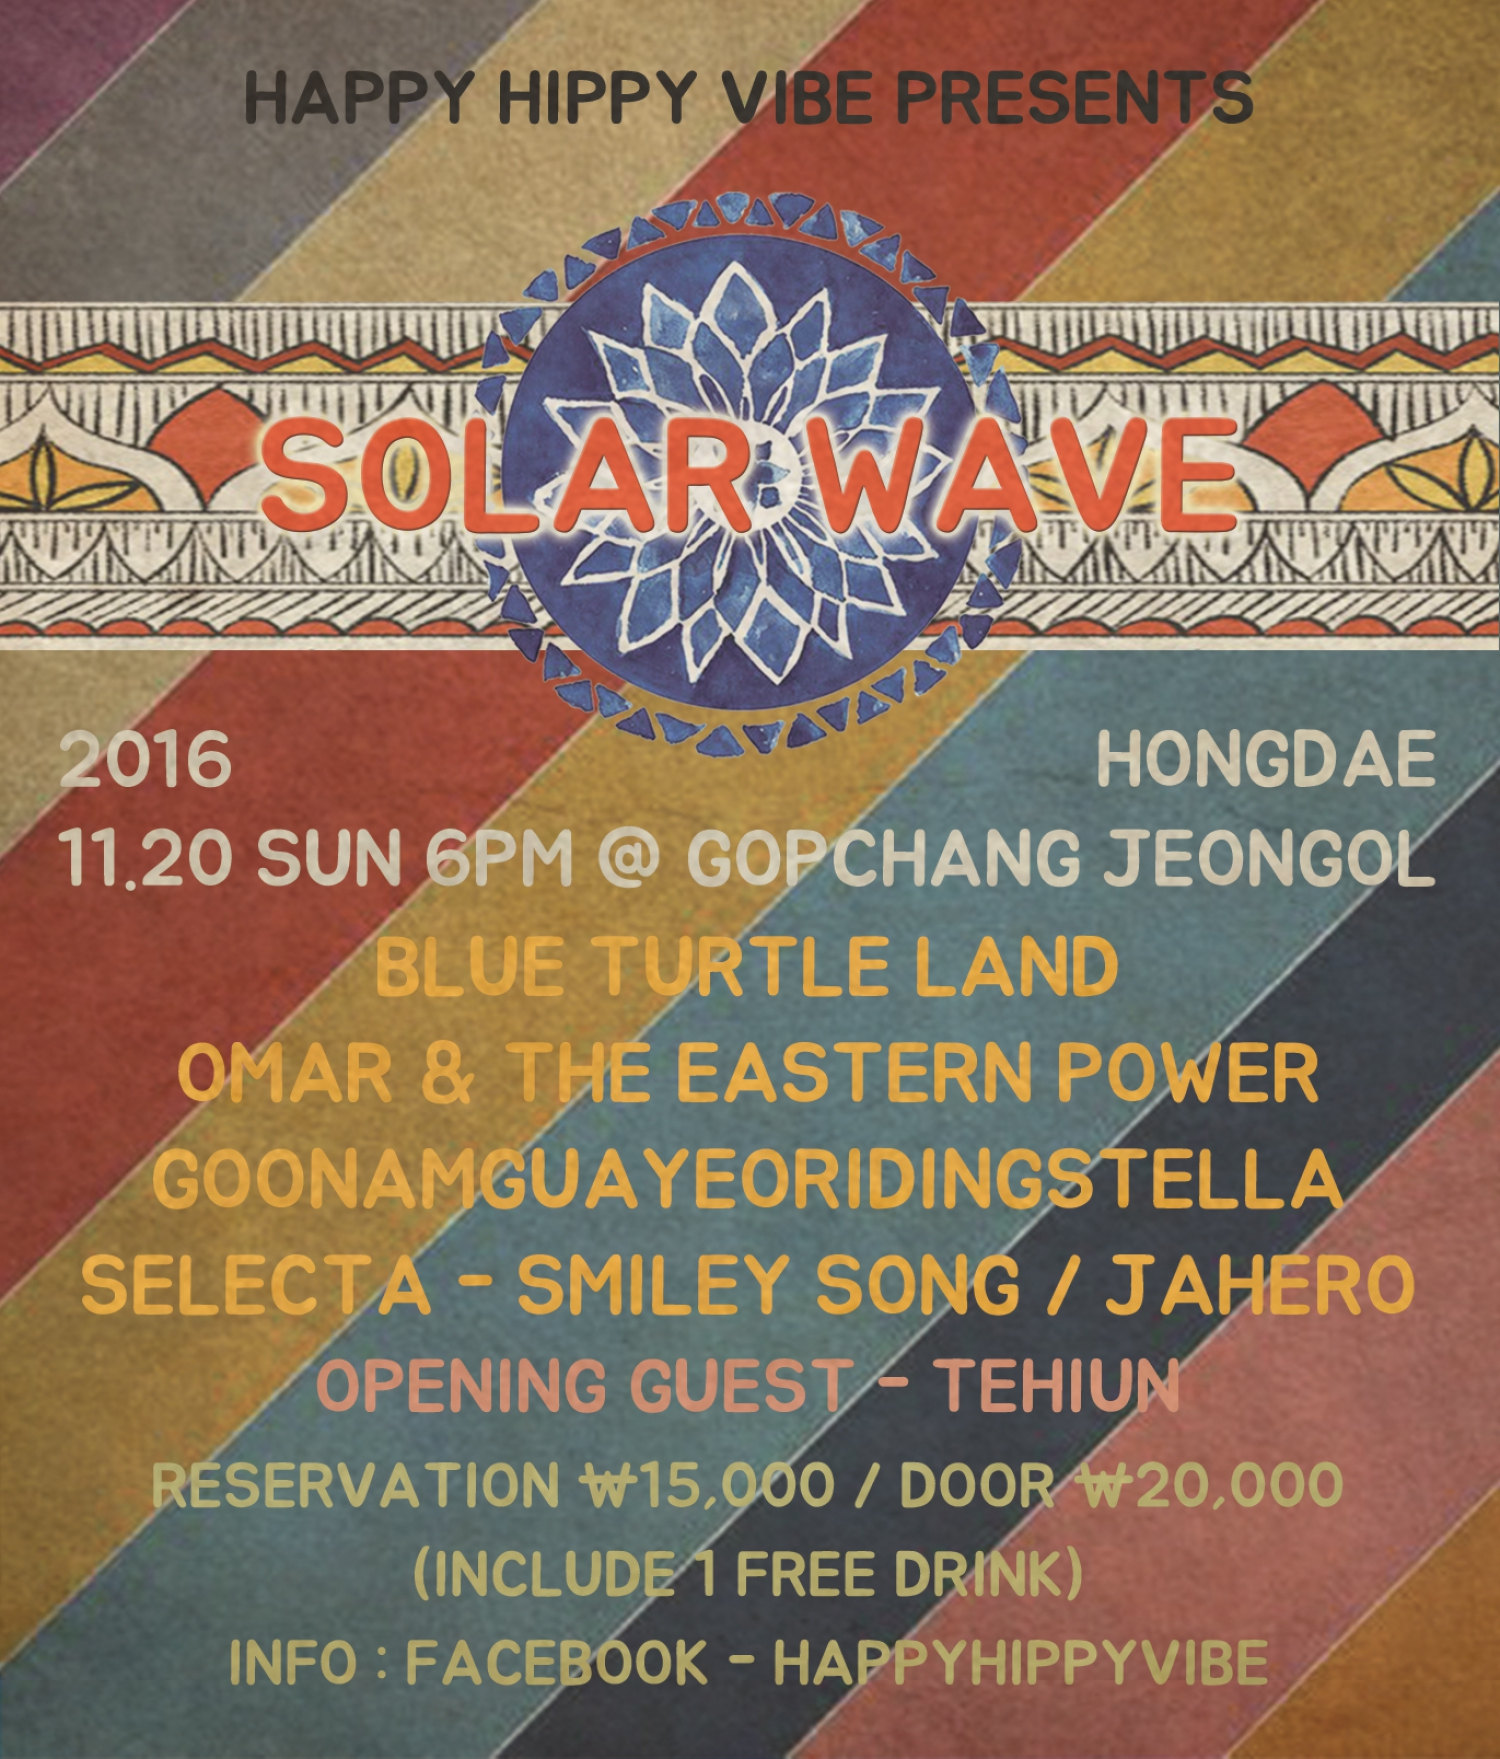 Sun 20th Nov 2016 Happy Hippy Vibe presents - 'Solar Wave' @ GopChangJeonGol in Hongdae